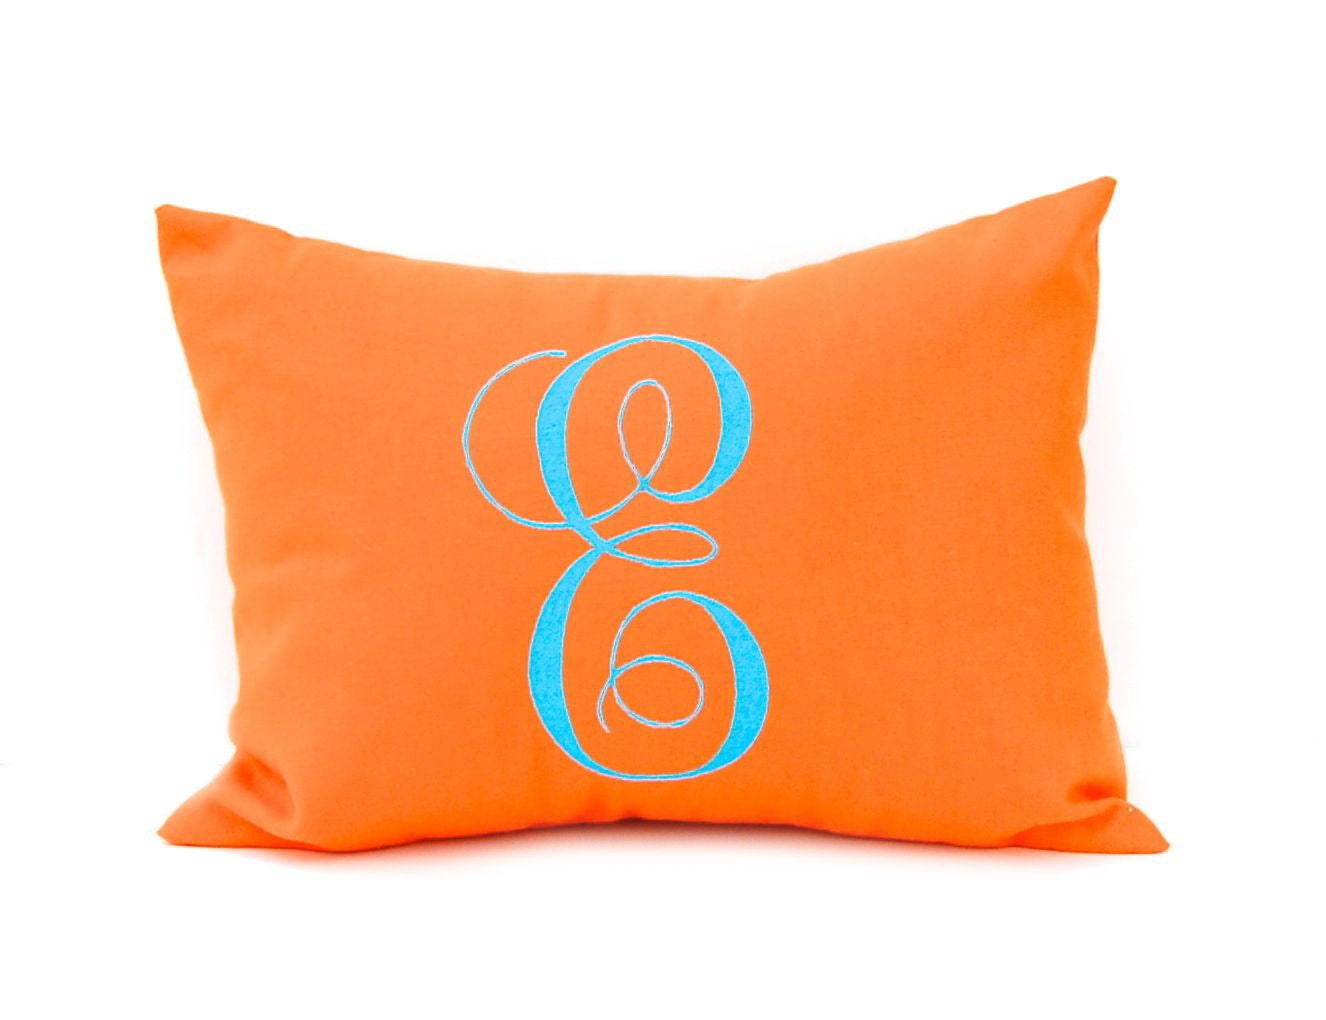 Decorative Pillows With Monogram : Monogram Pillow Decorative Throw Pillow Cover Solid Pillow